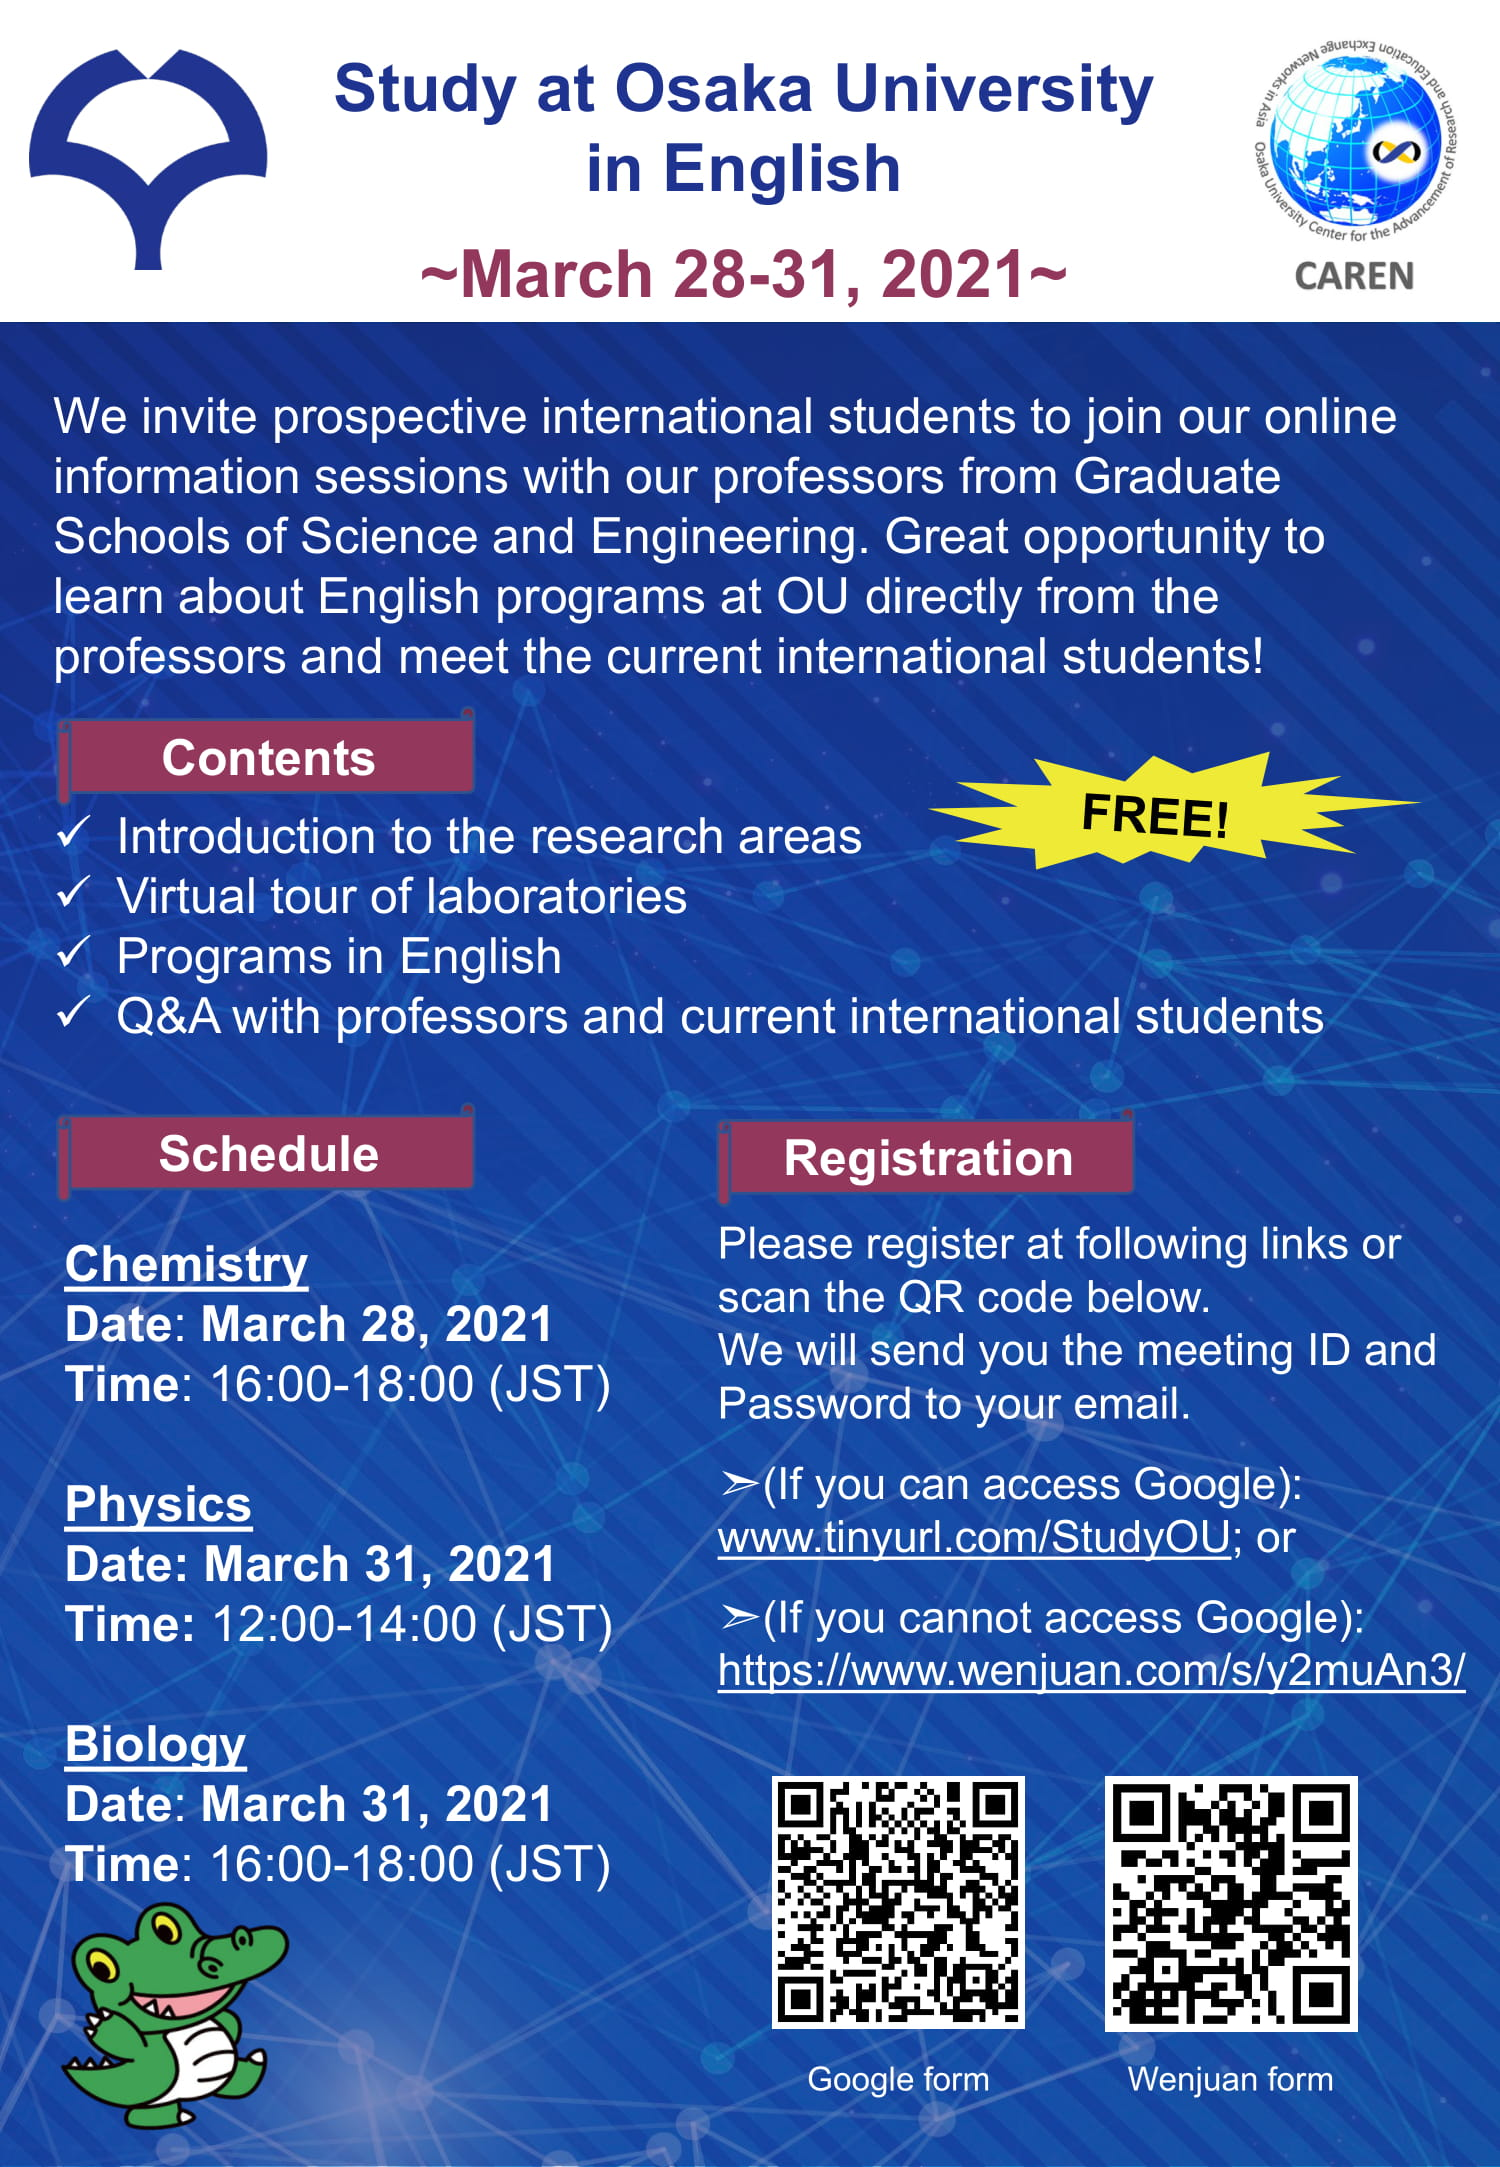 【Osaka University Online Sessions】Study at Osaka University in English